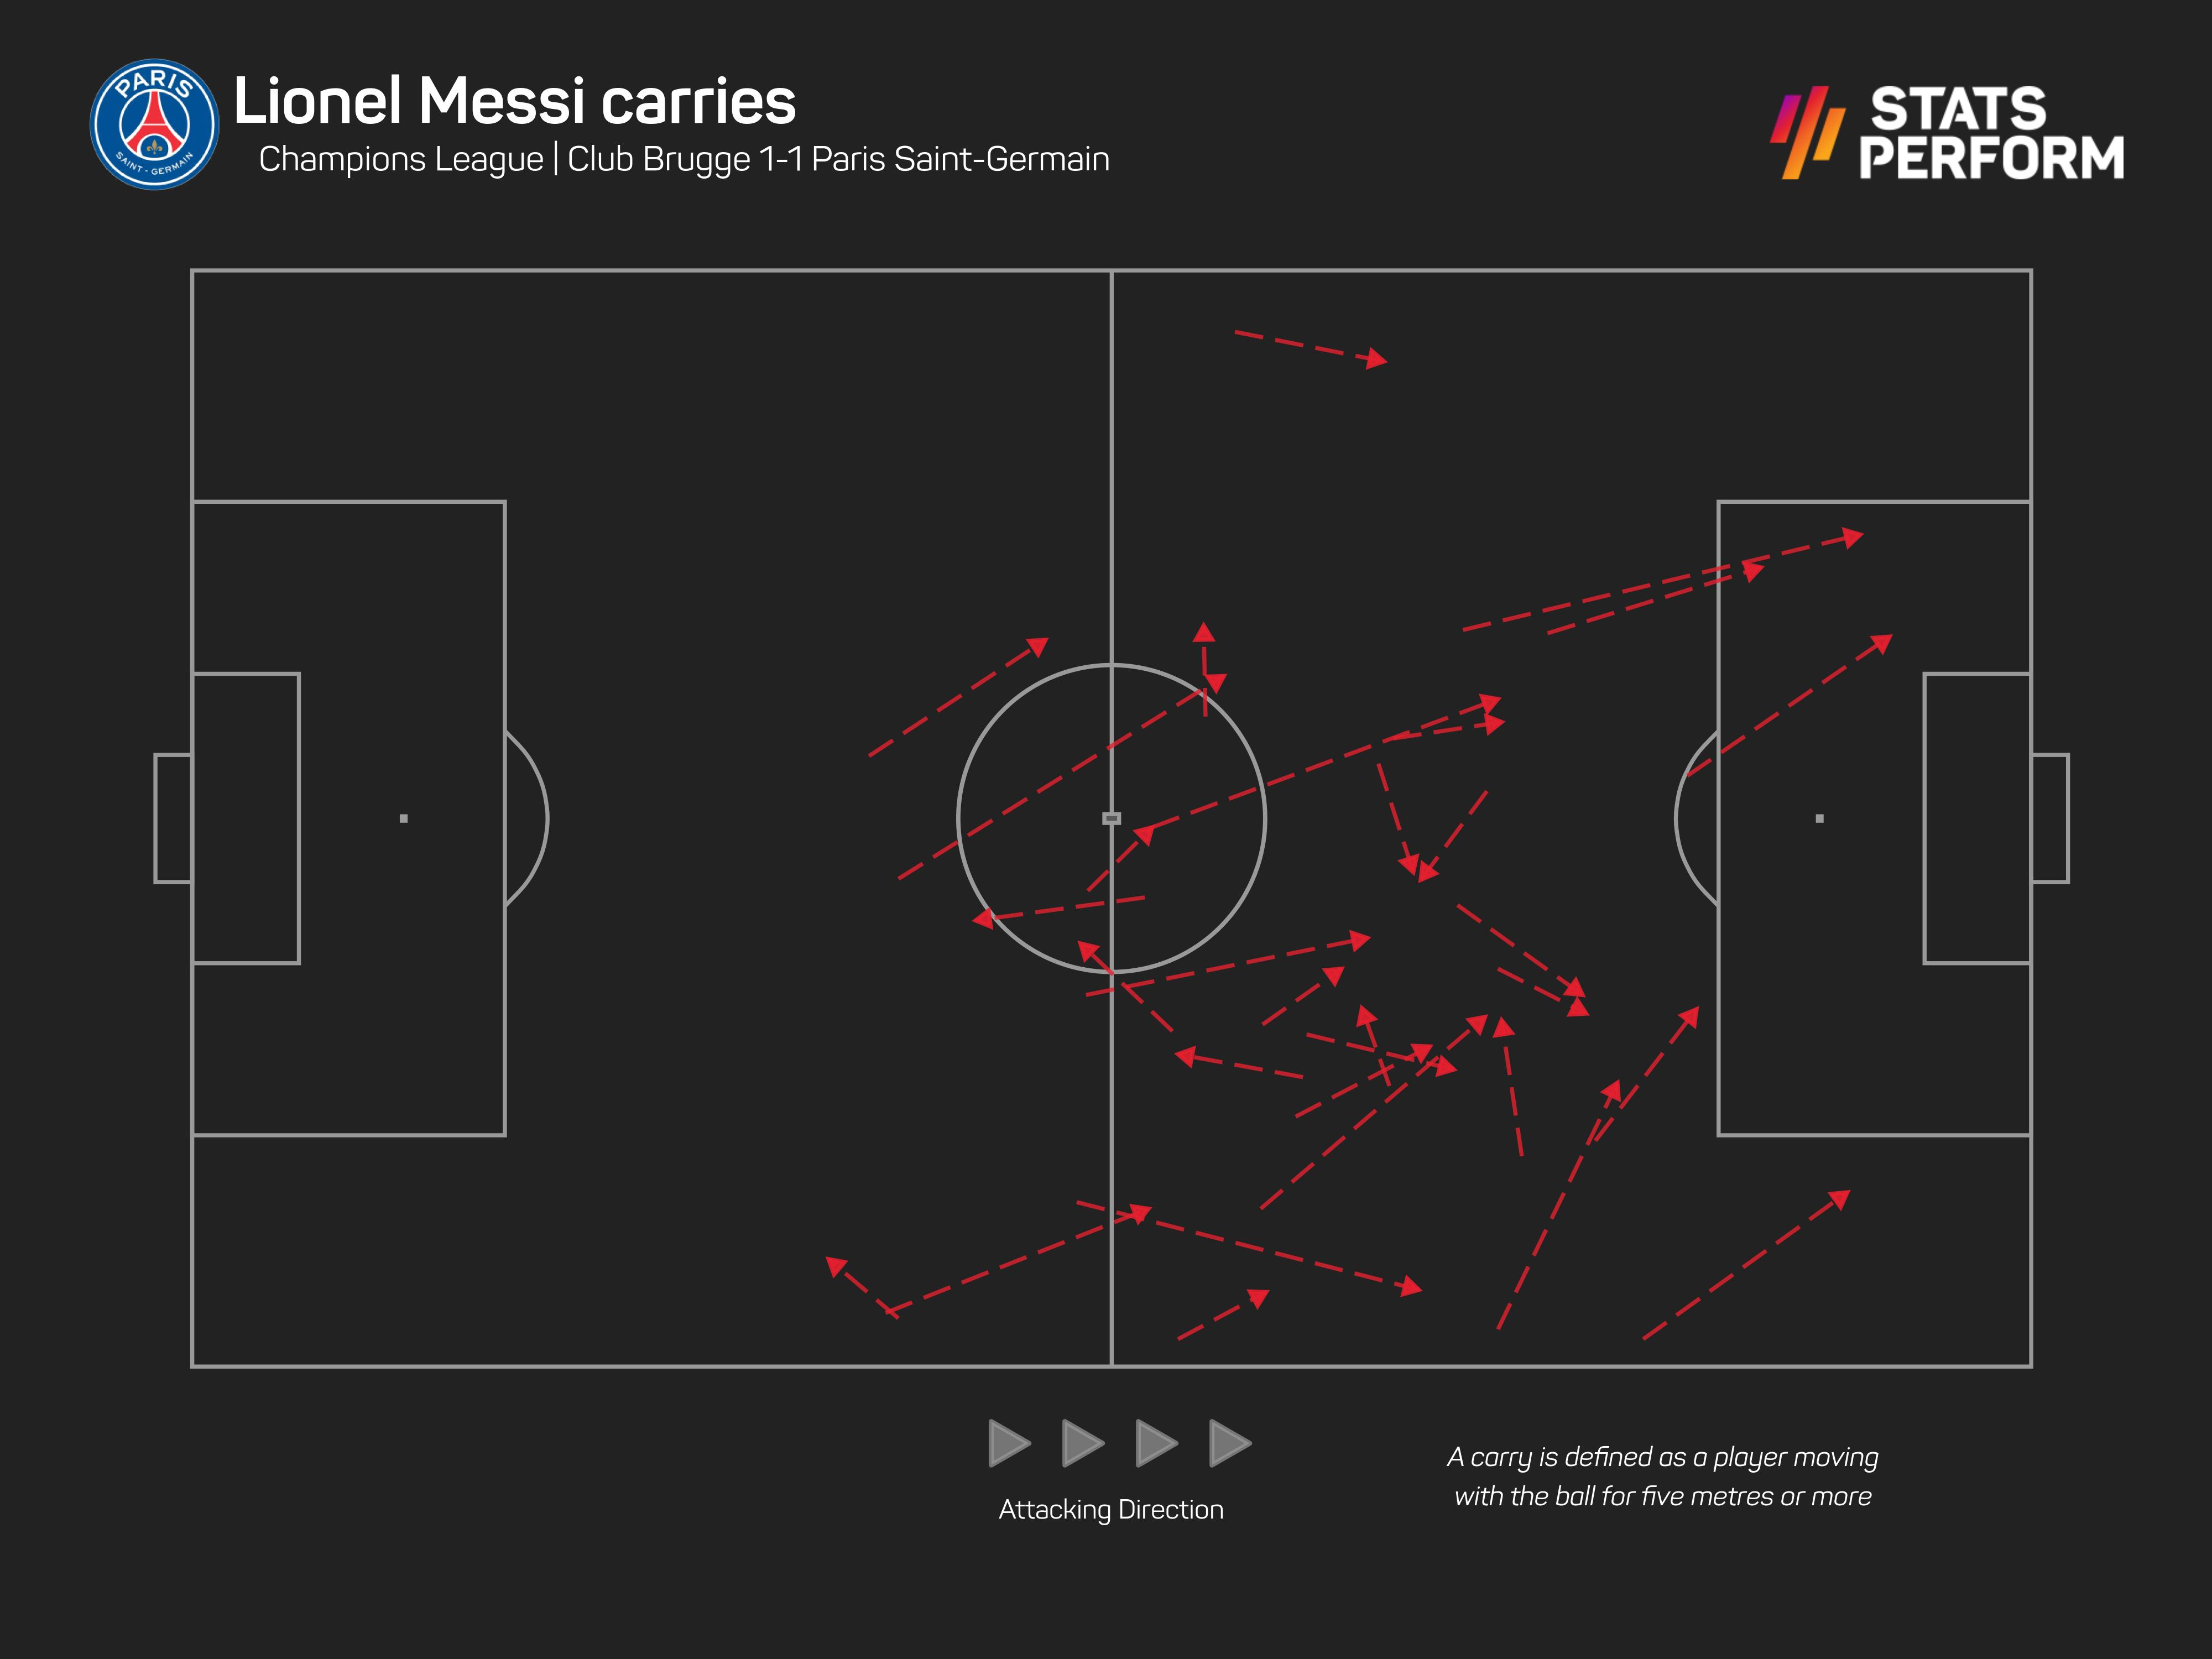 Lionel Messi ball carries